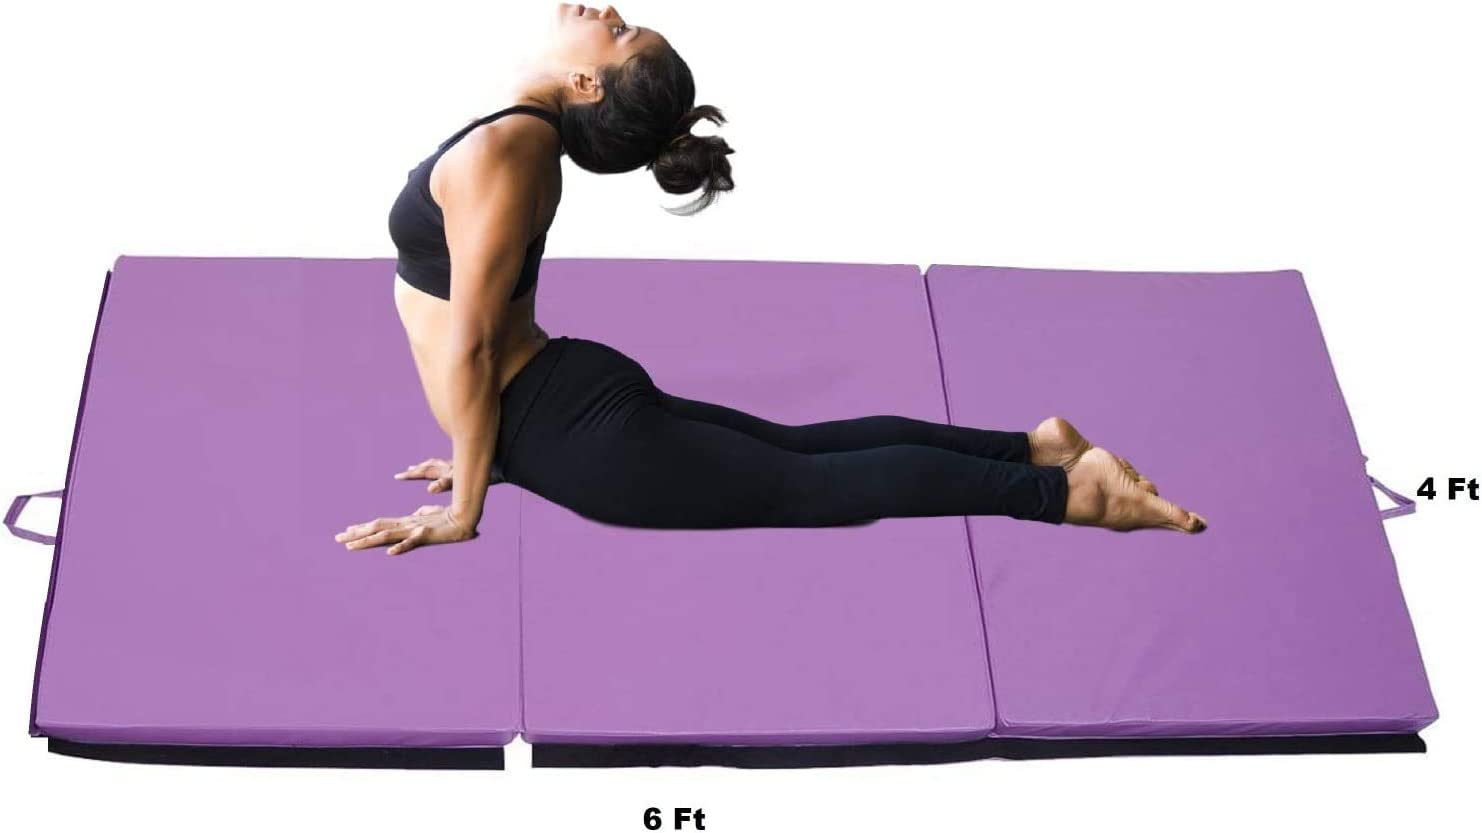 Core Workouts, ProSource Bi-Fold Folding Thick Exercise Mat 182cm x 60cm with Carrying Handles for MMA Gymnastics Stretching Choose you color 6x2